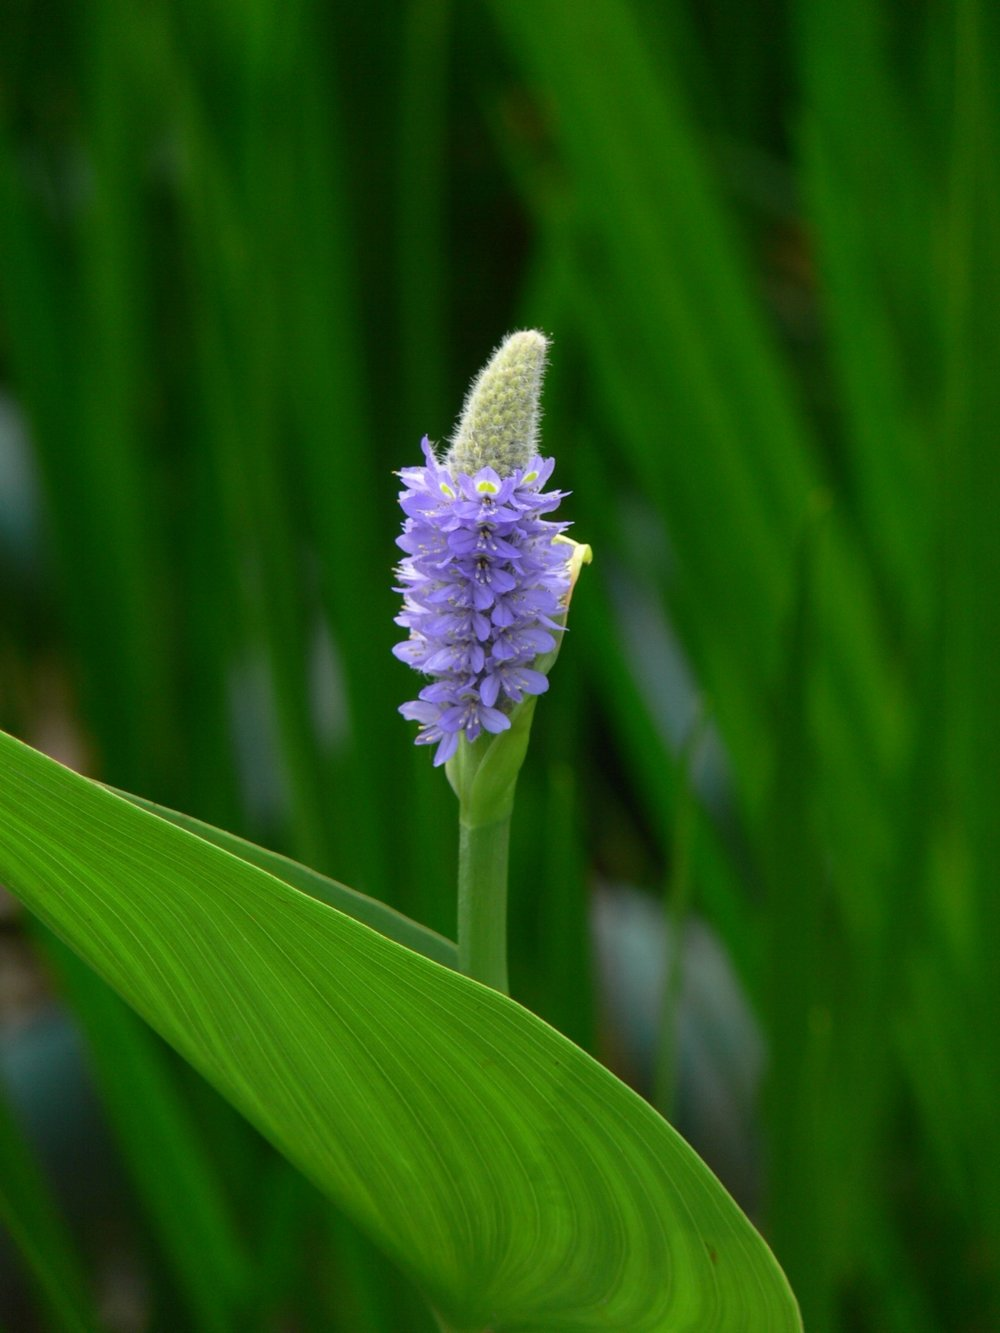 Flower of  Pontederia cordata  (Pickerelweed)